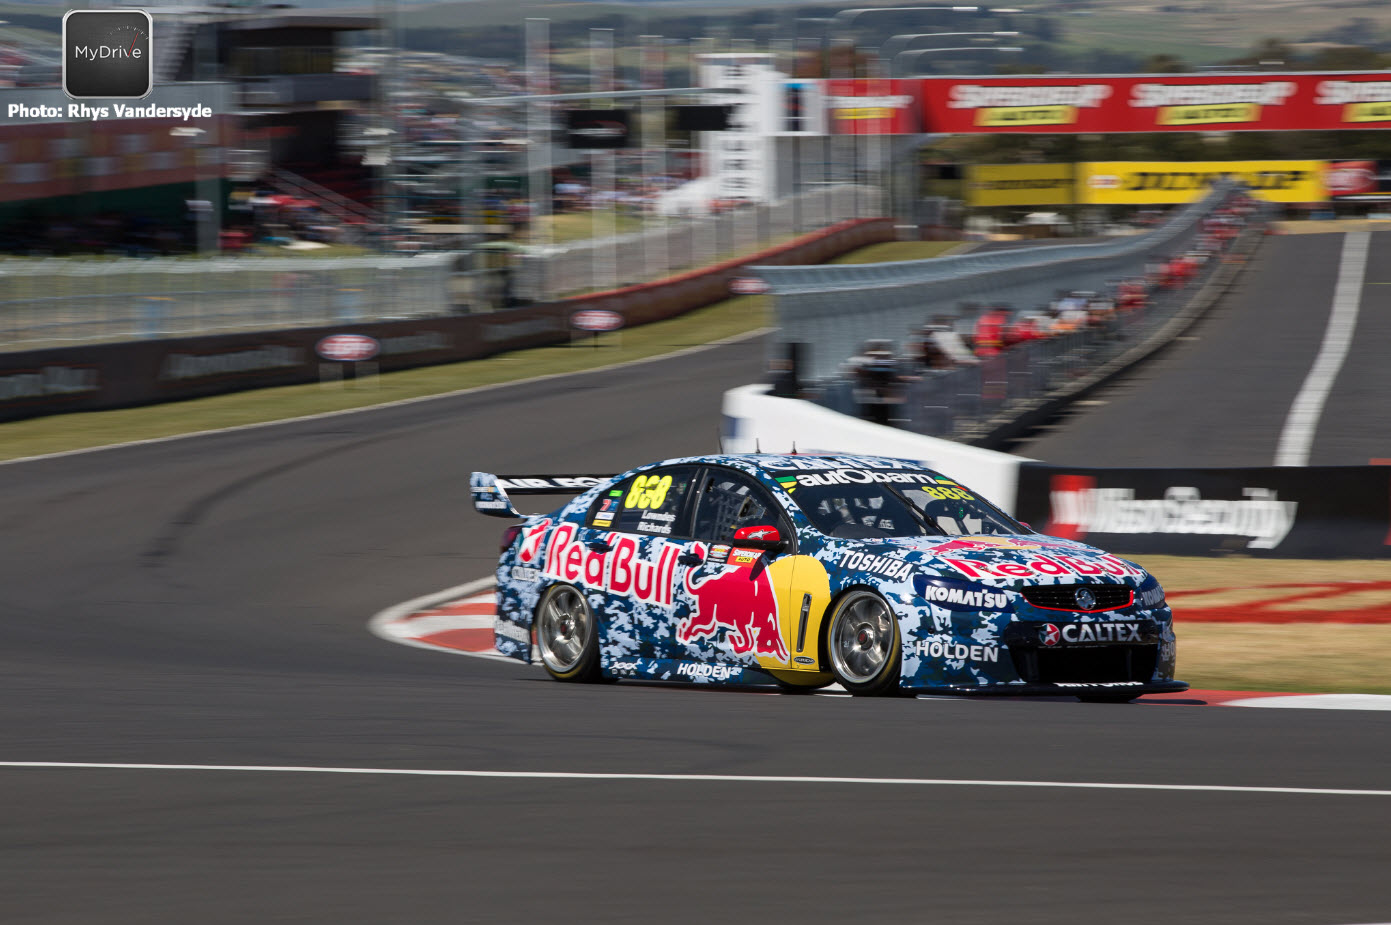 v8 supercars bathurst live streaming - photo#15